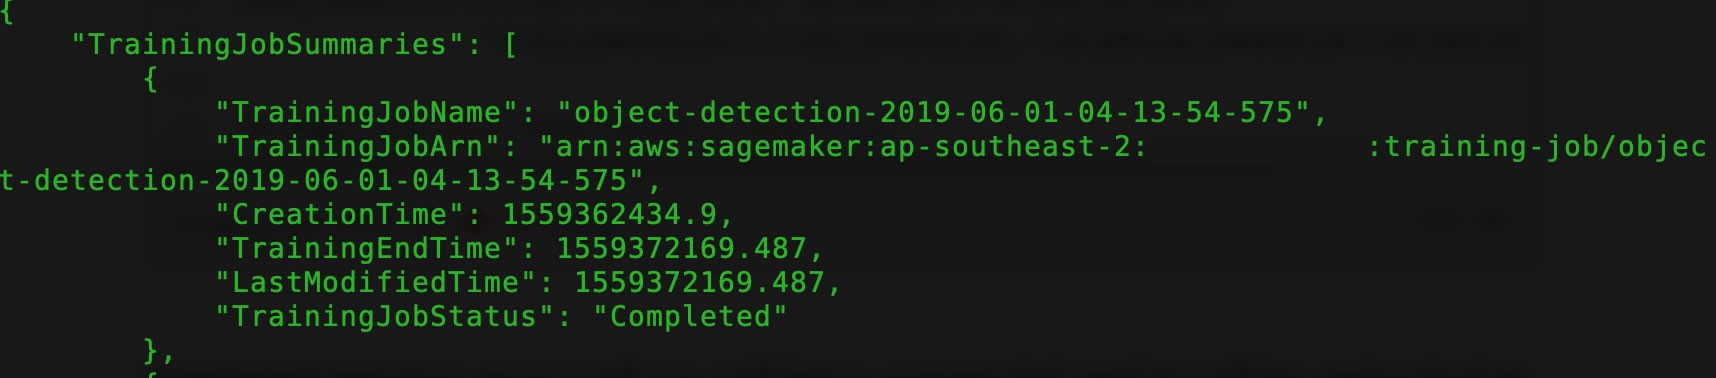 Real-time Object Detection API using Amazon SageMaker and